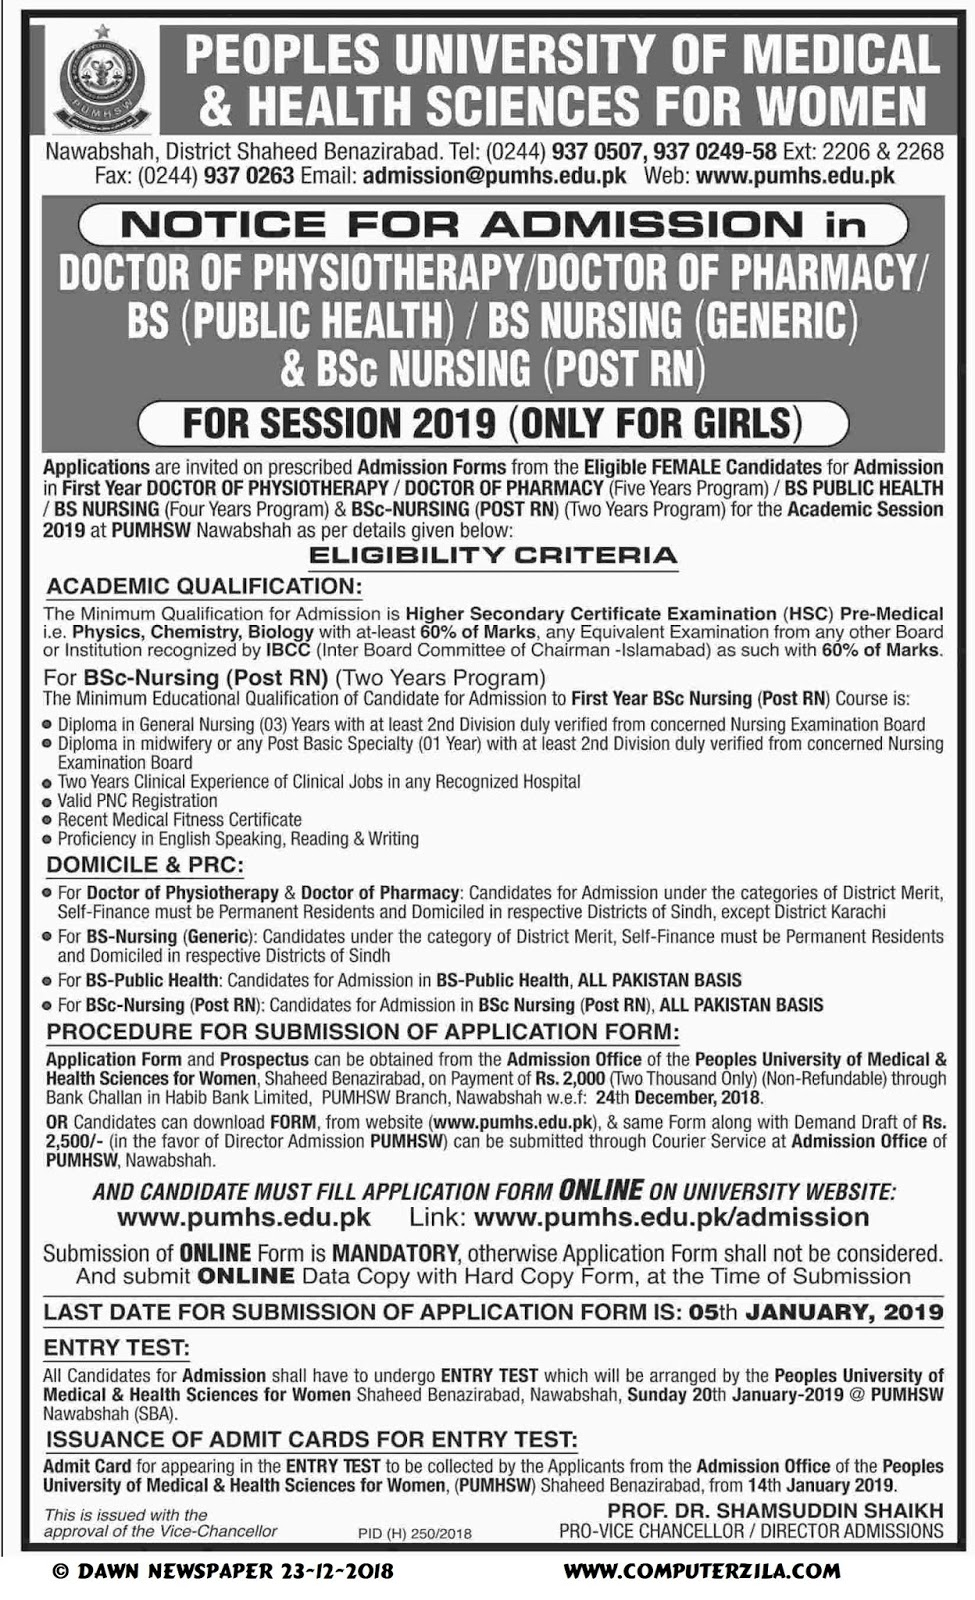 Admissions Open For Spring 2019 At PUMHS Nawabshah Campus